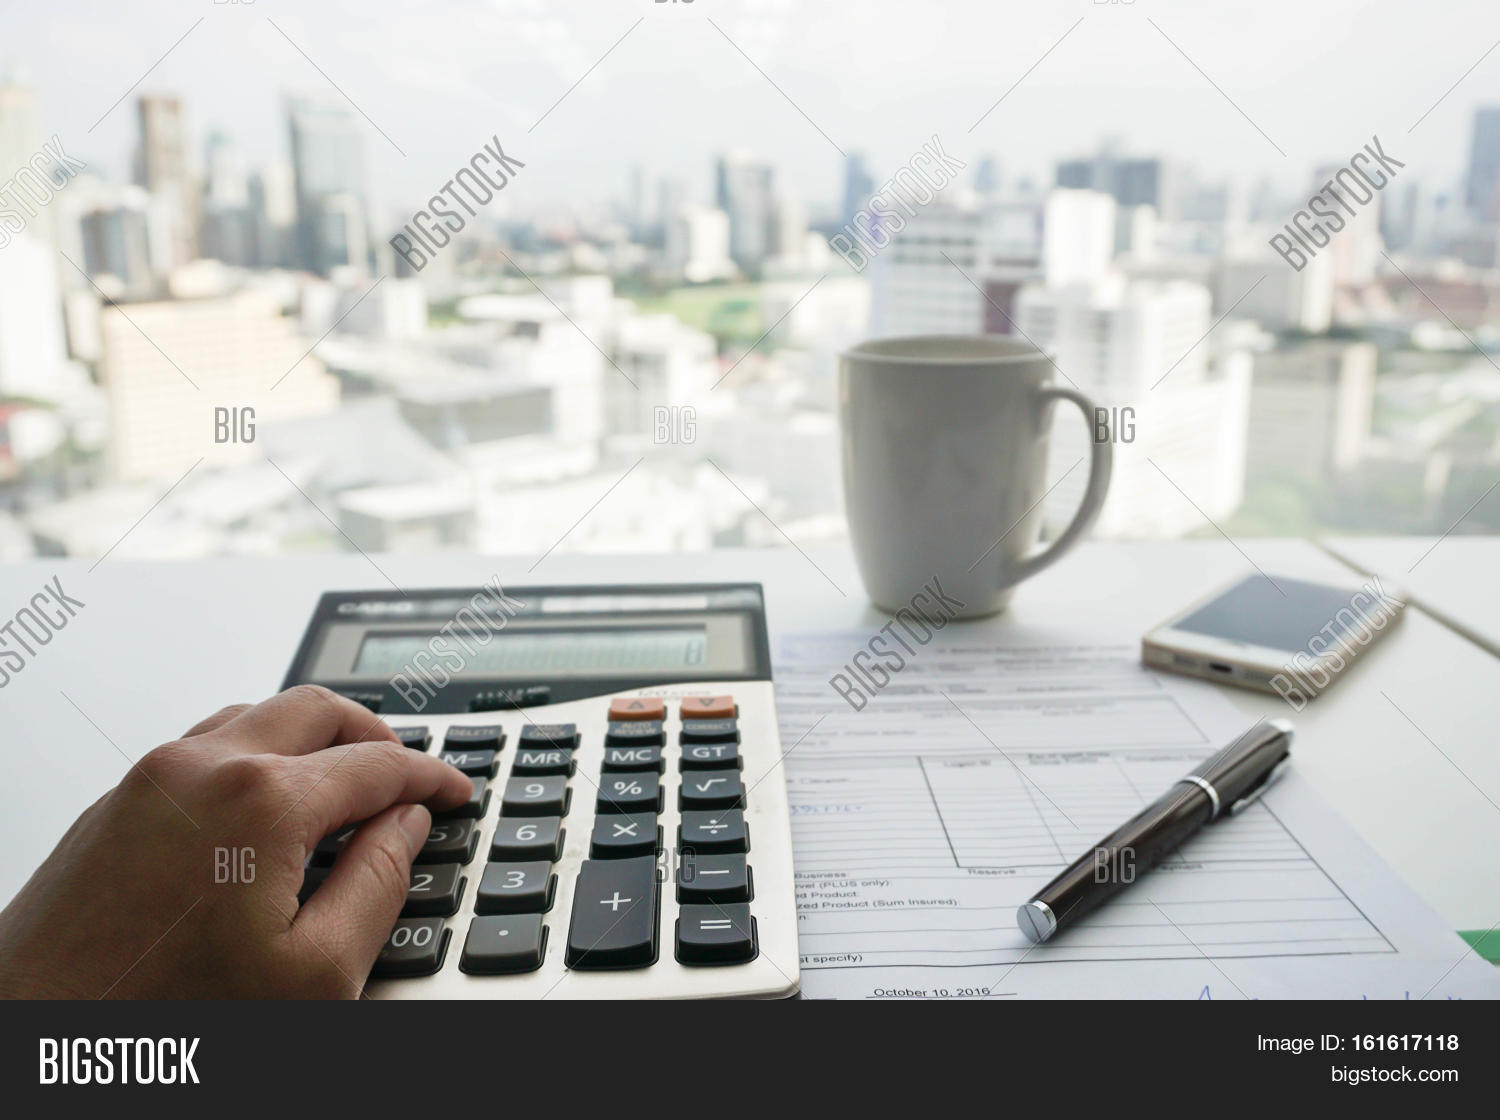 Accountant Calculator Image & Photo (Free Trial) | Bigstock